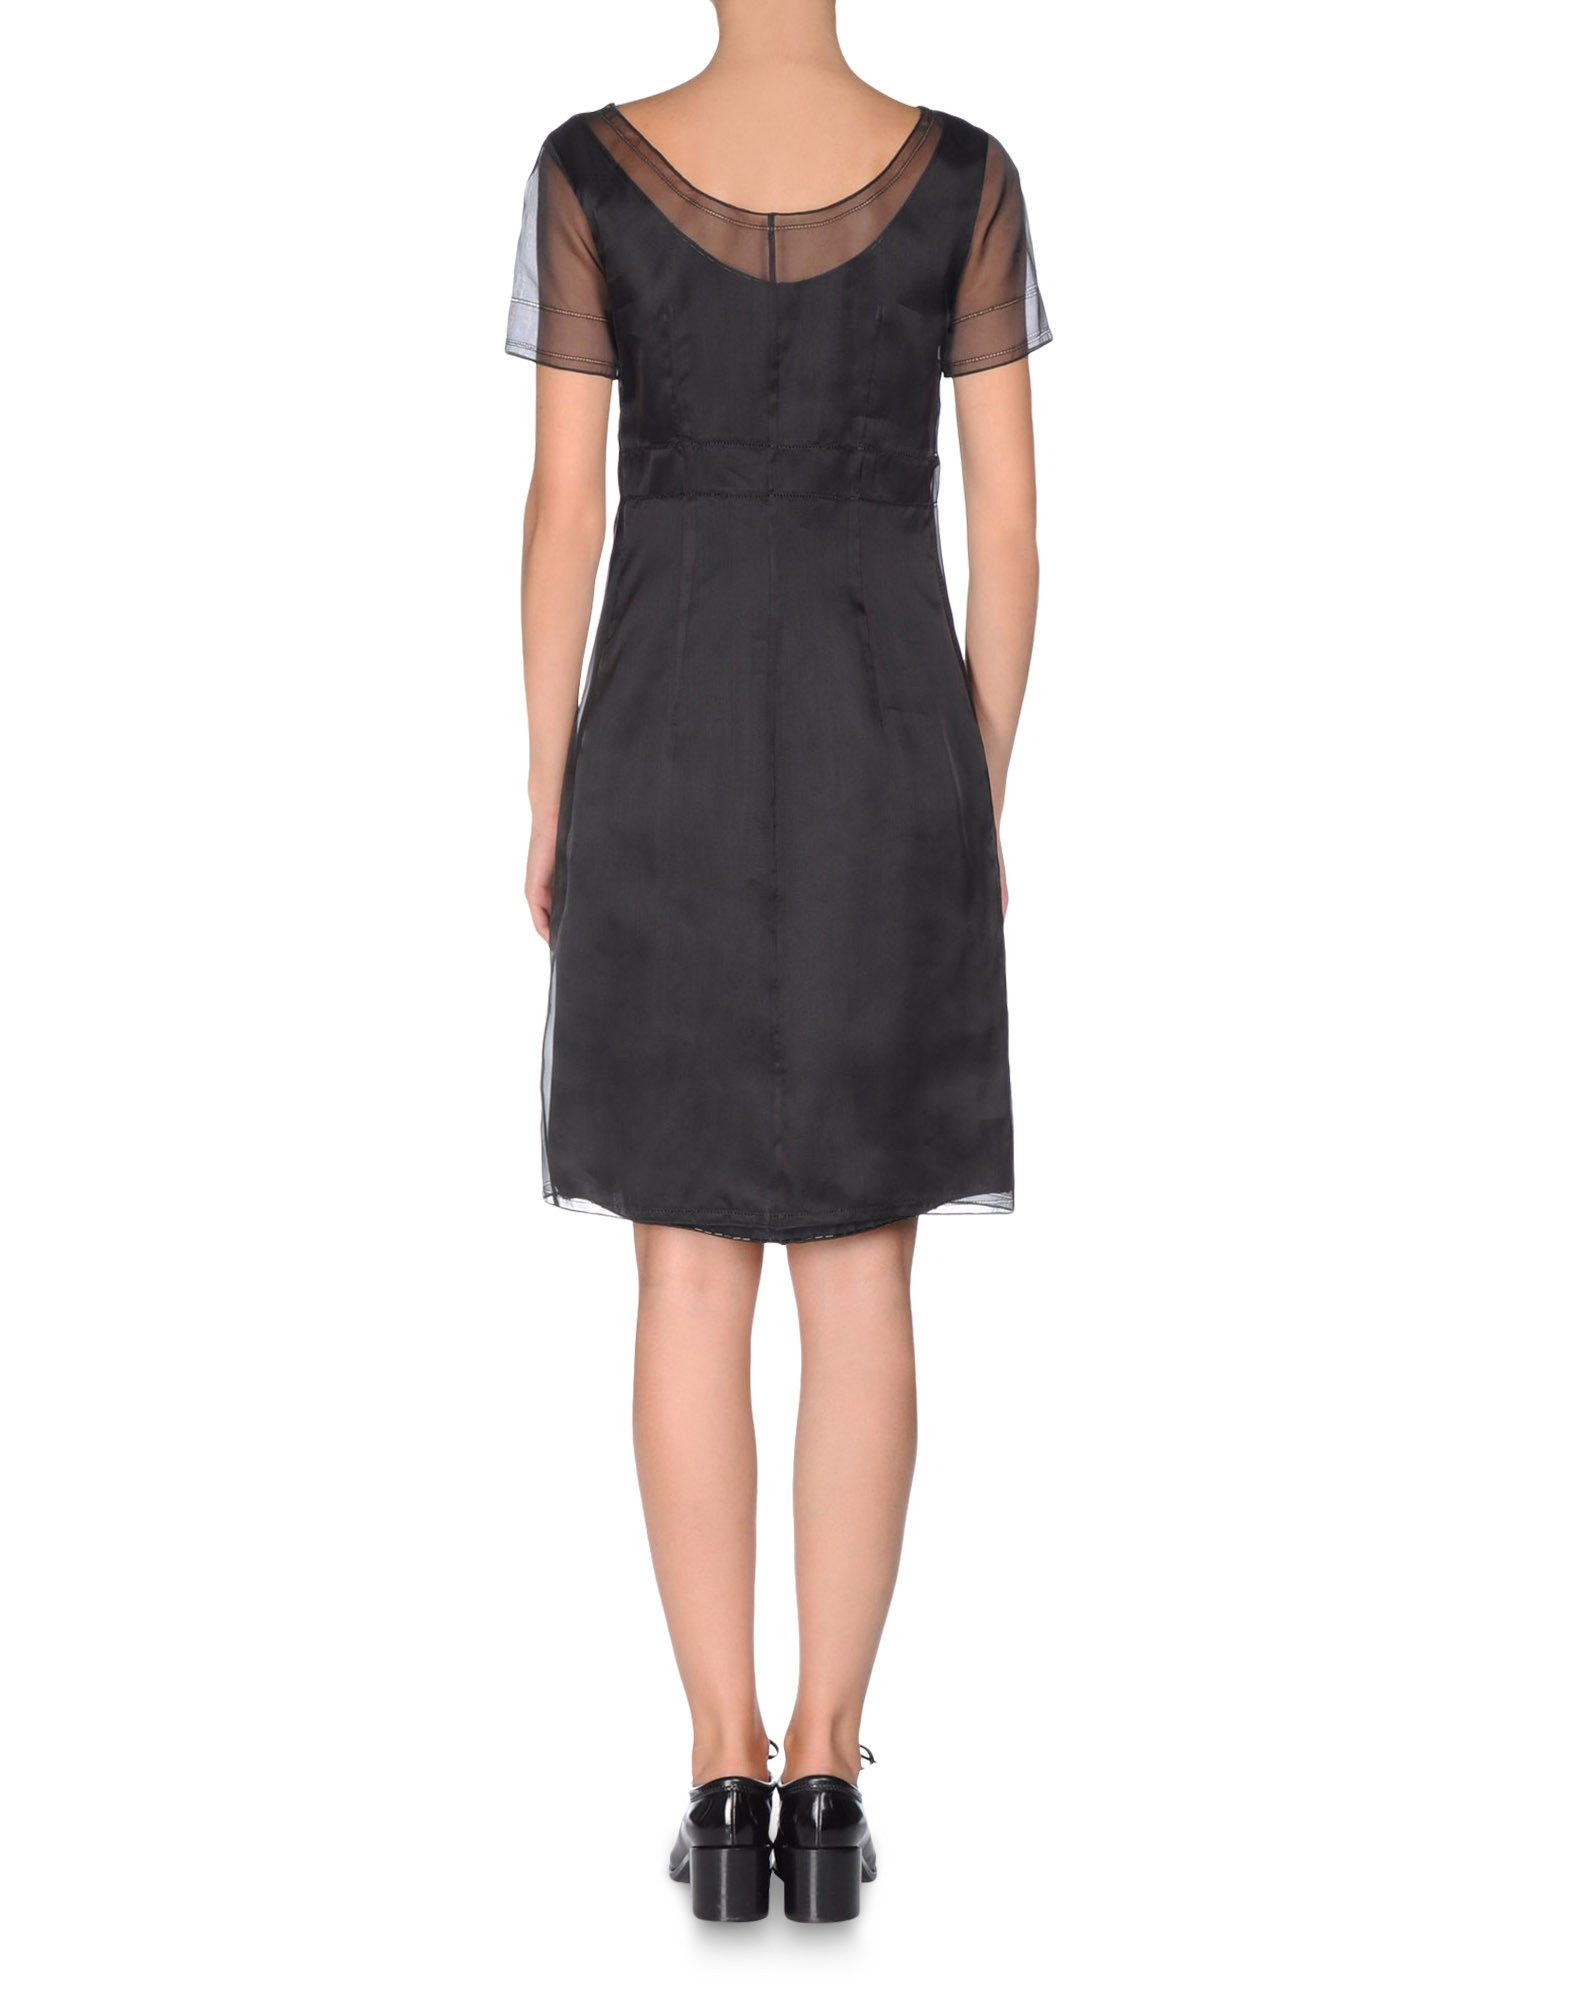 Dress - JIL SANDER NAVY Online Store